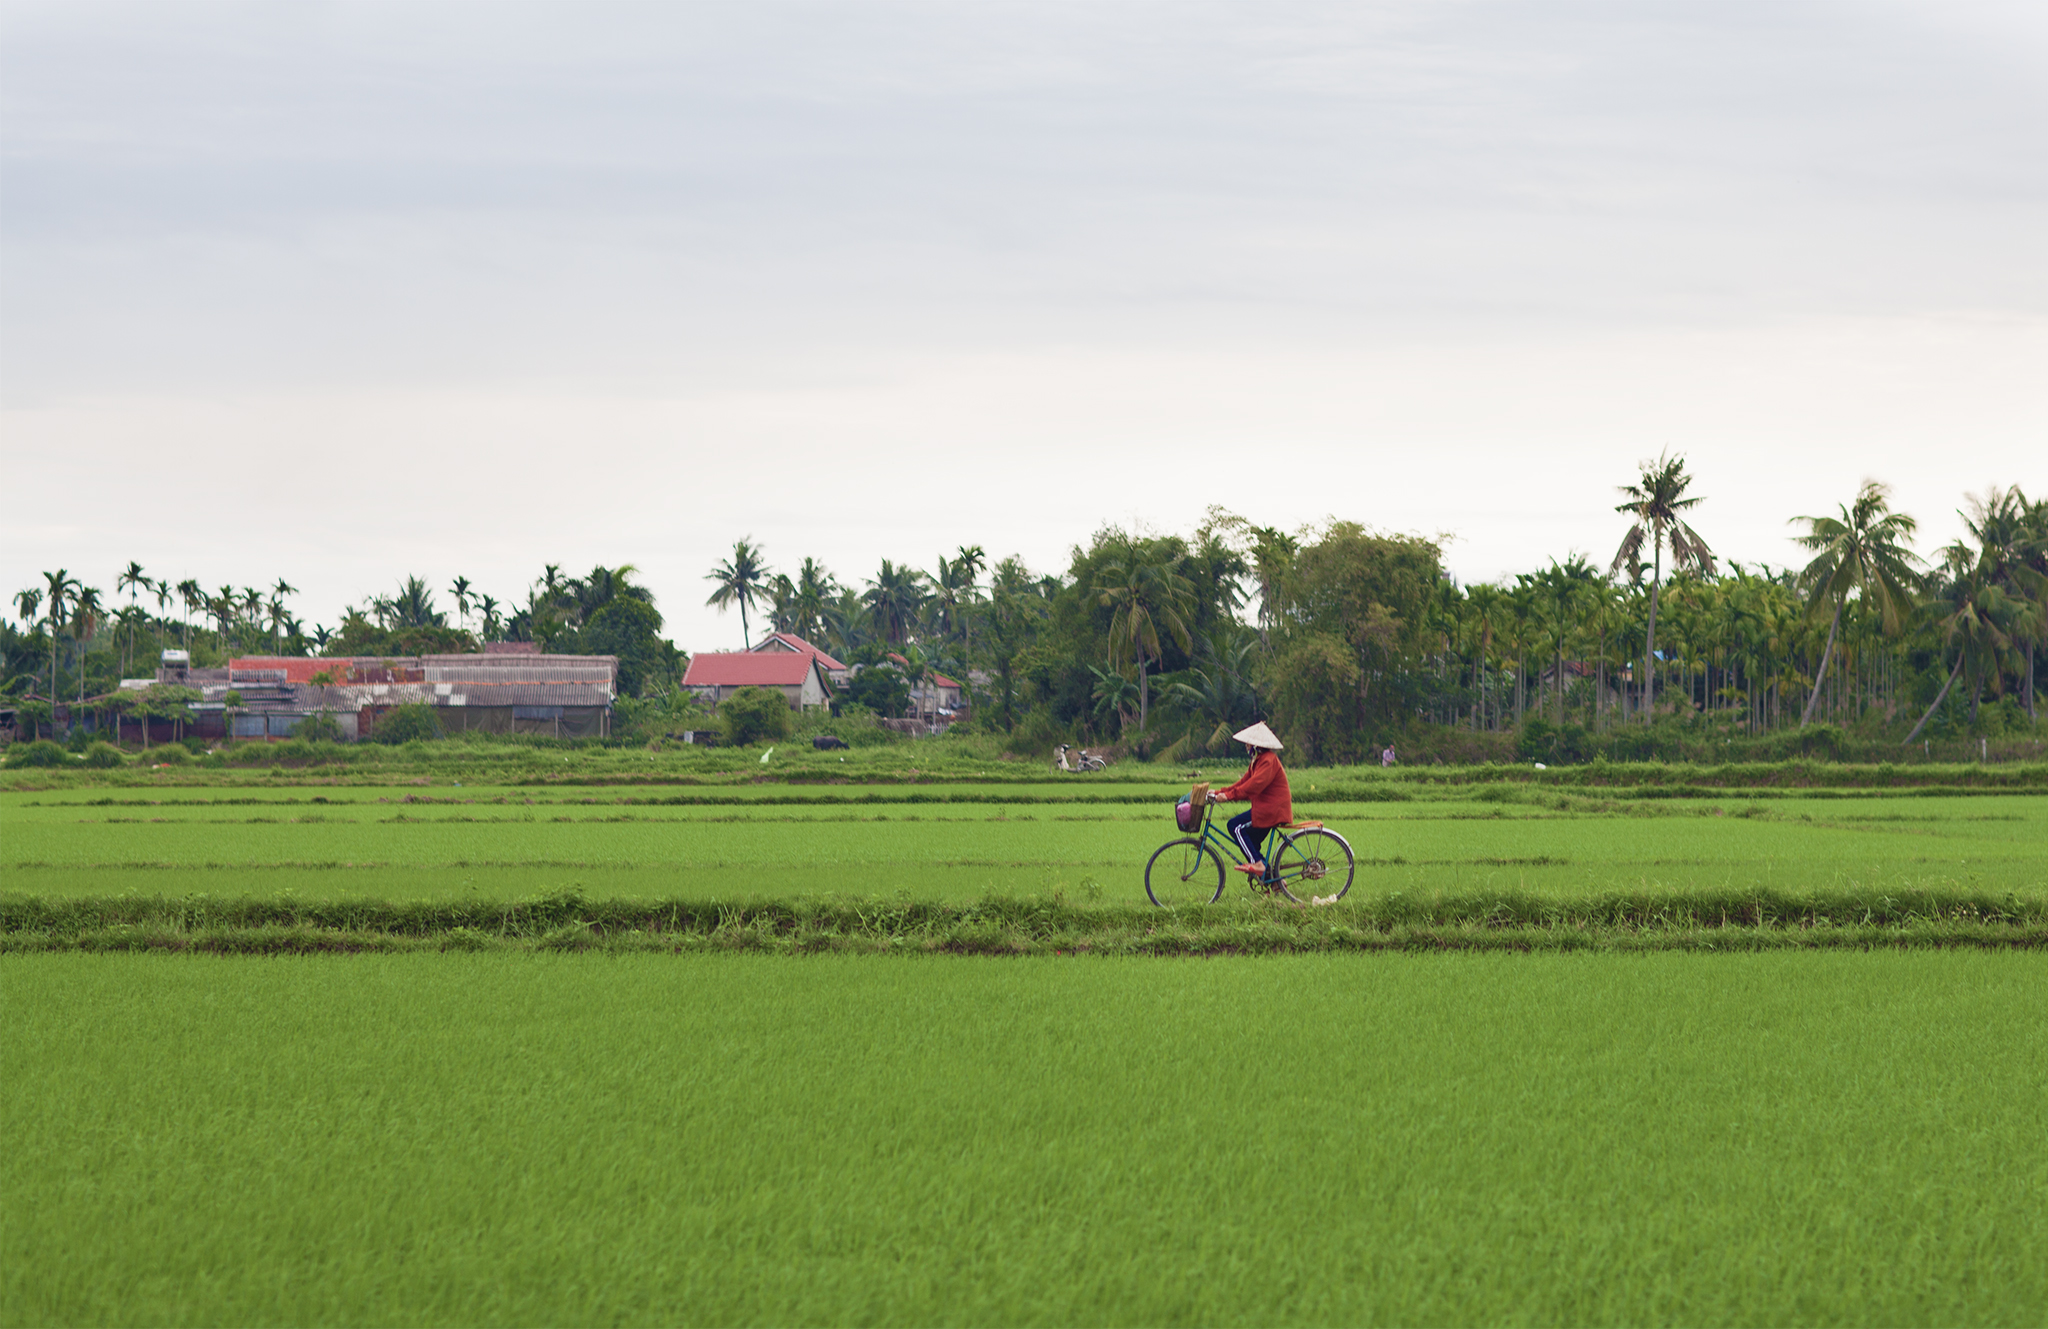 VIETNAM 101 - A quick guide to the Vietnam I fell in love with - Behind The Quest